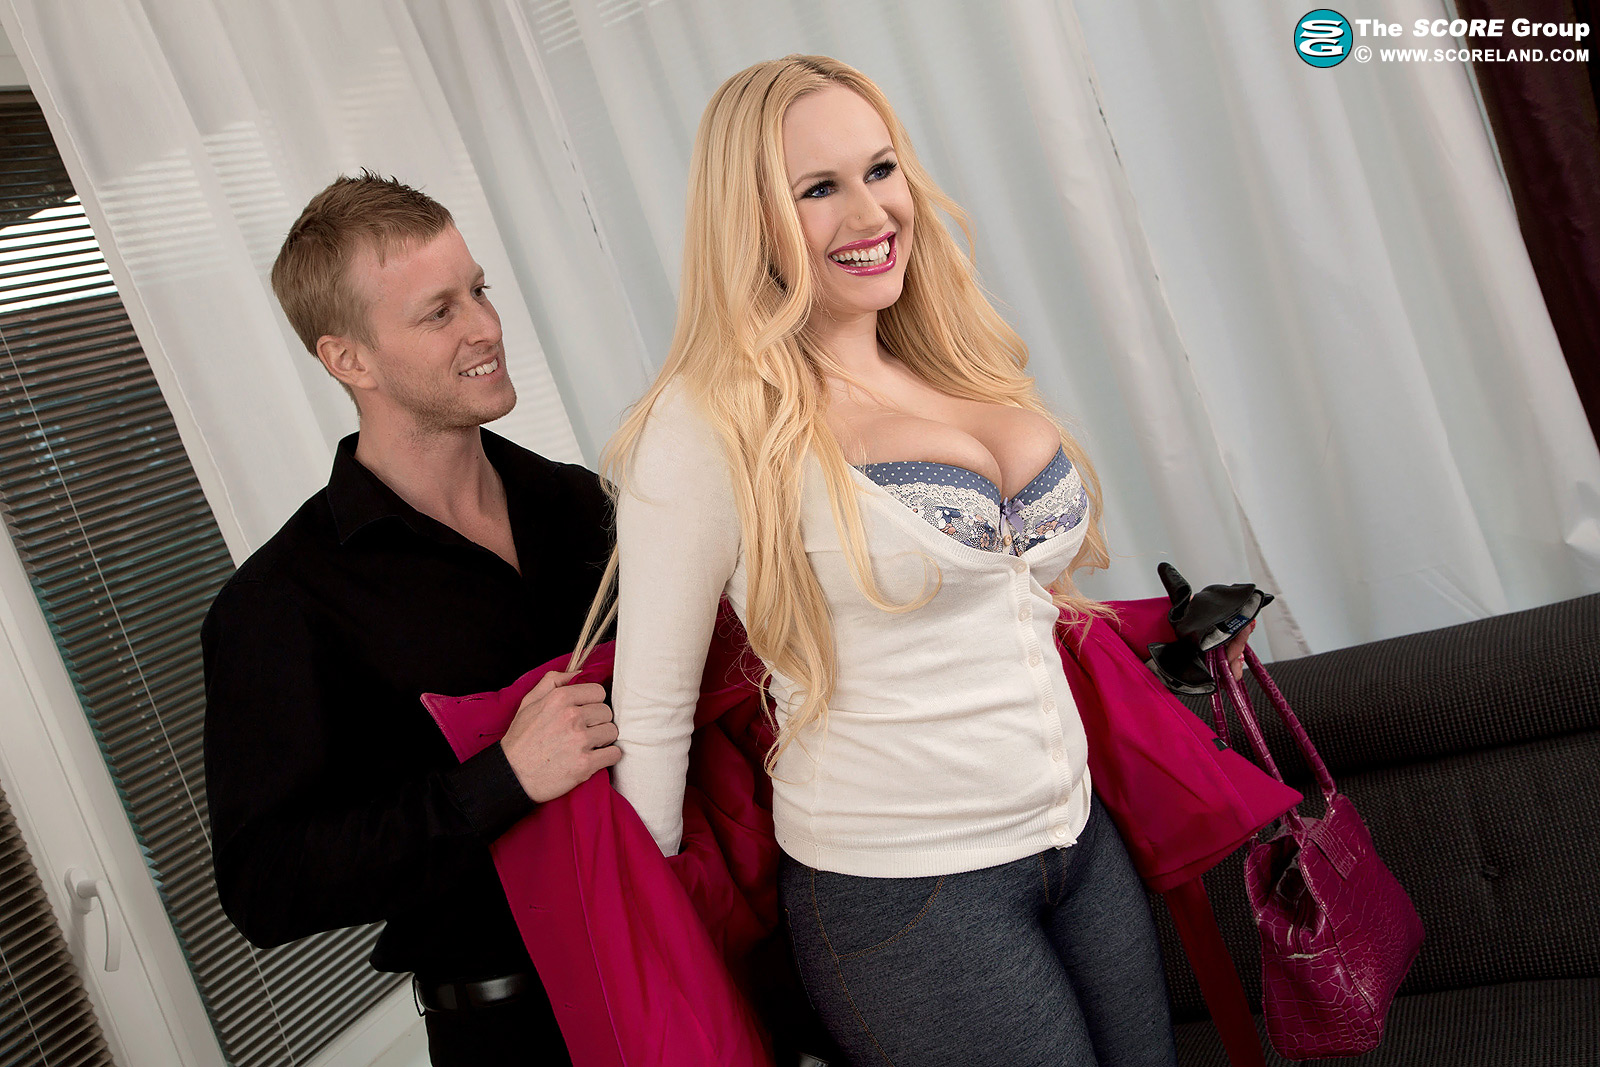 Hot blonde Angel Wicky does anal with a man on the first date № 1433951 бесплатно